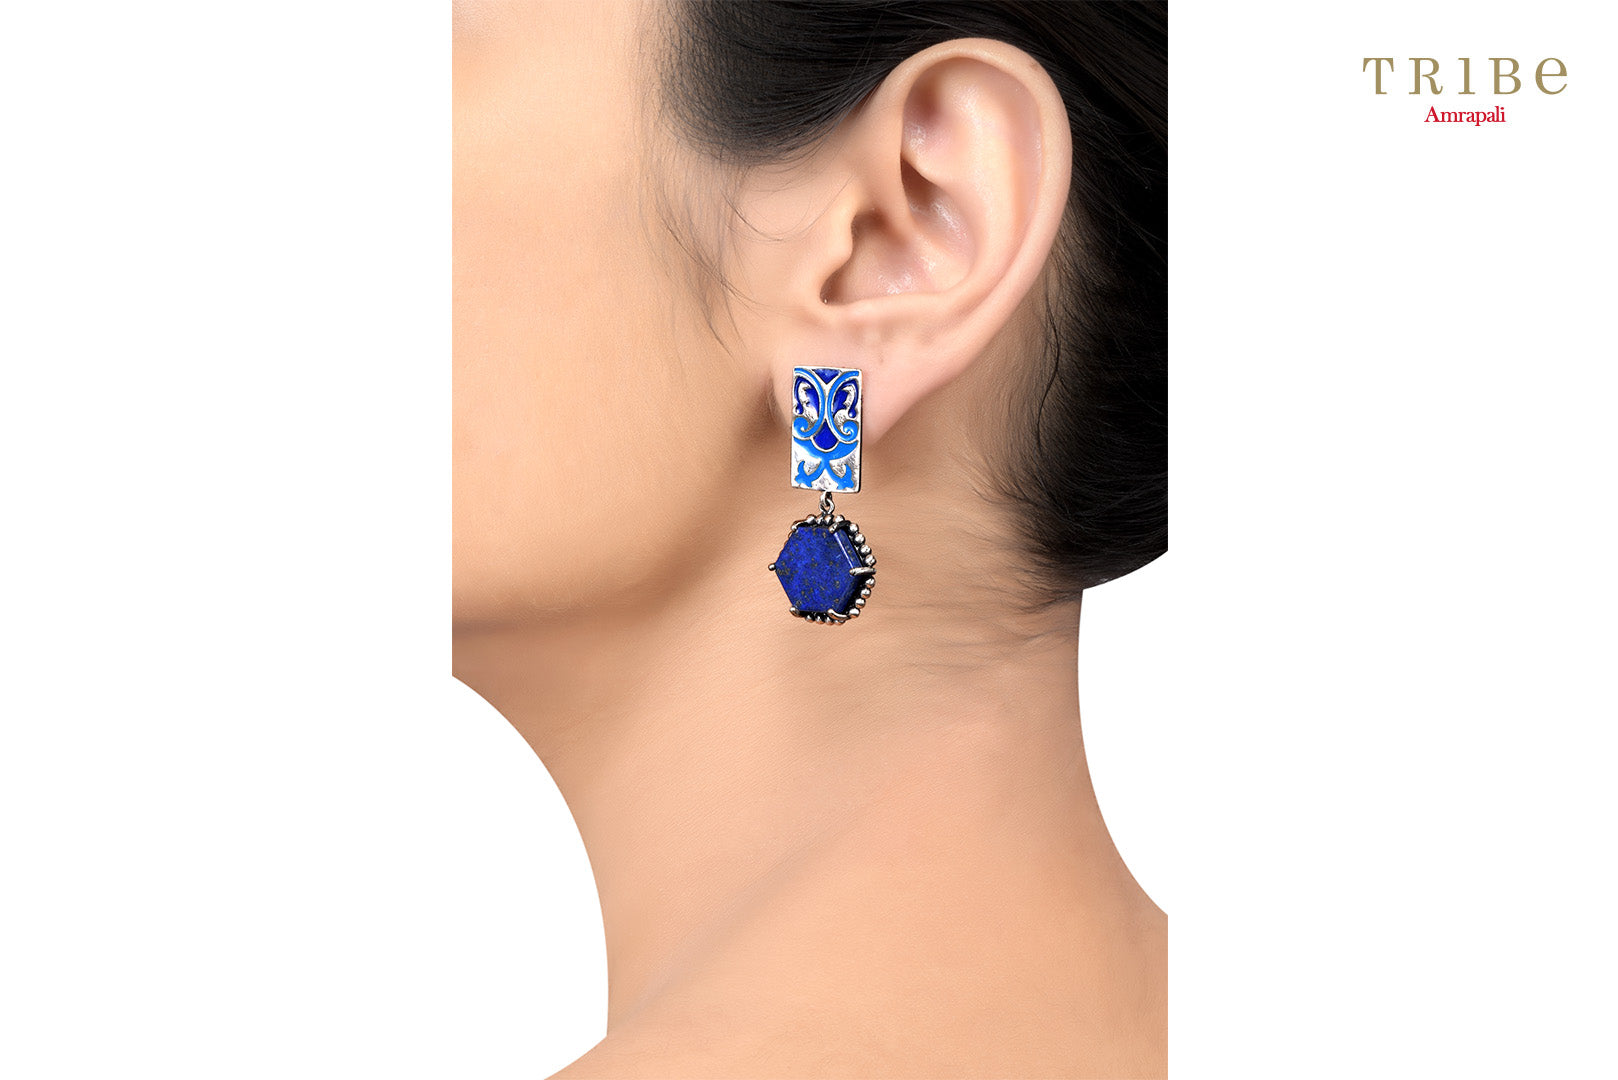 Tribe Amrapali hexagon lapis abstract enamel silver earrings buy online in USA.  If you want to shop such ethnic Indian silver earrings in USA, then look no further than Pure Elegance exclusive fashion store or shop online.-ear view